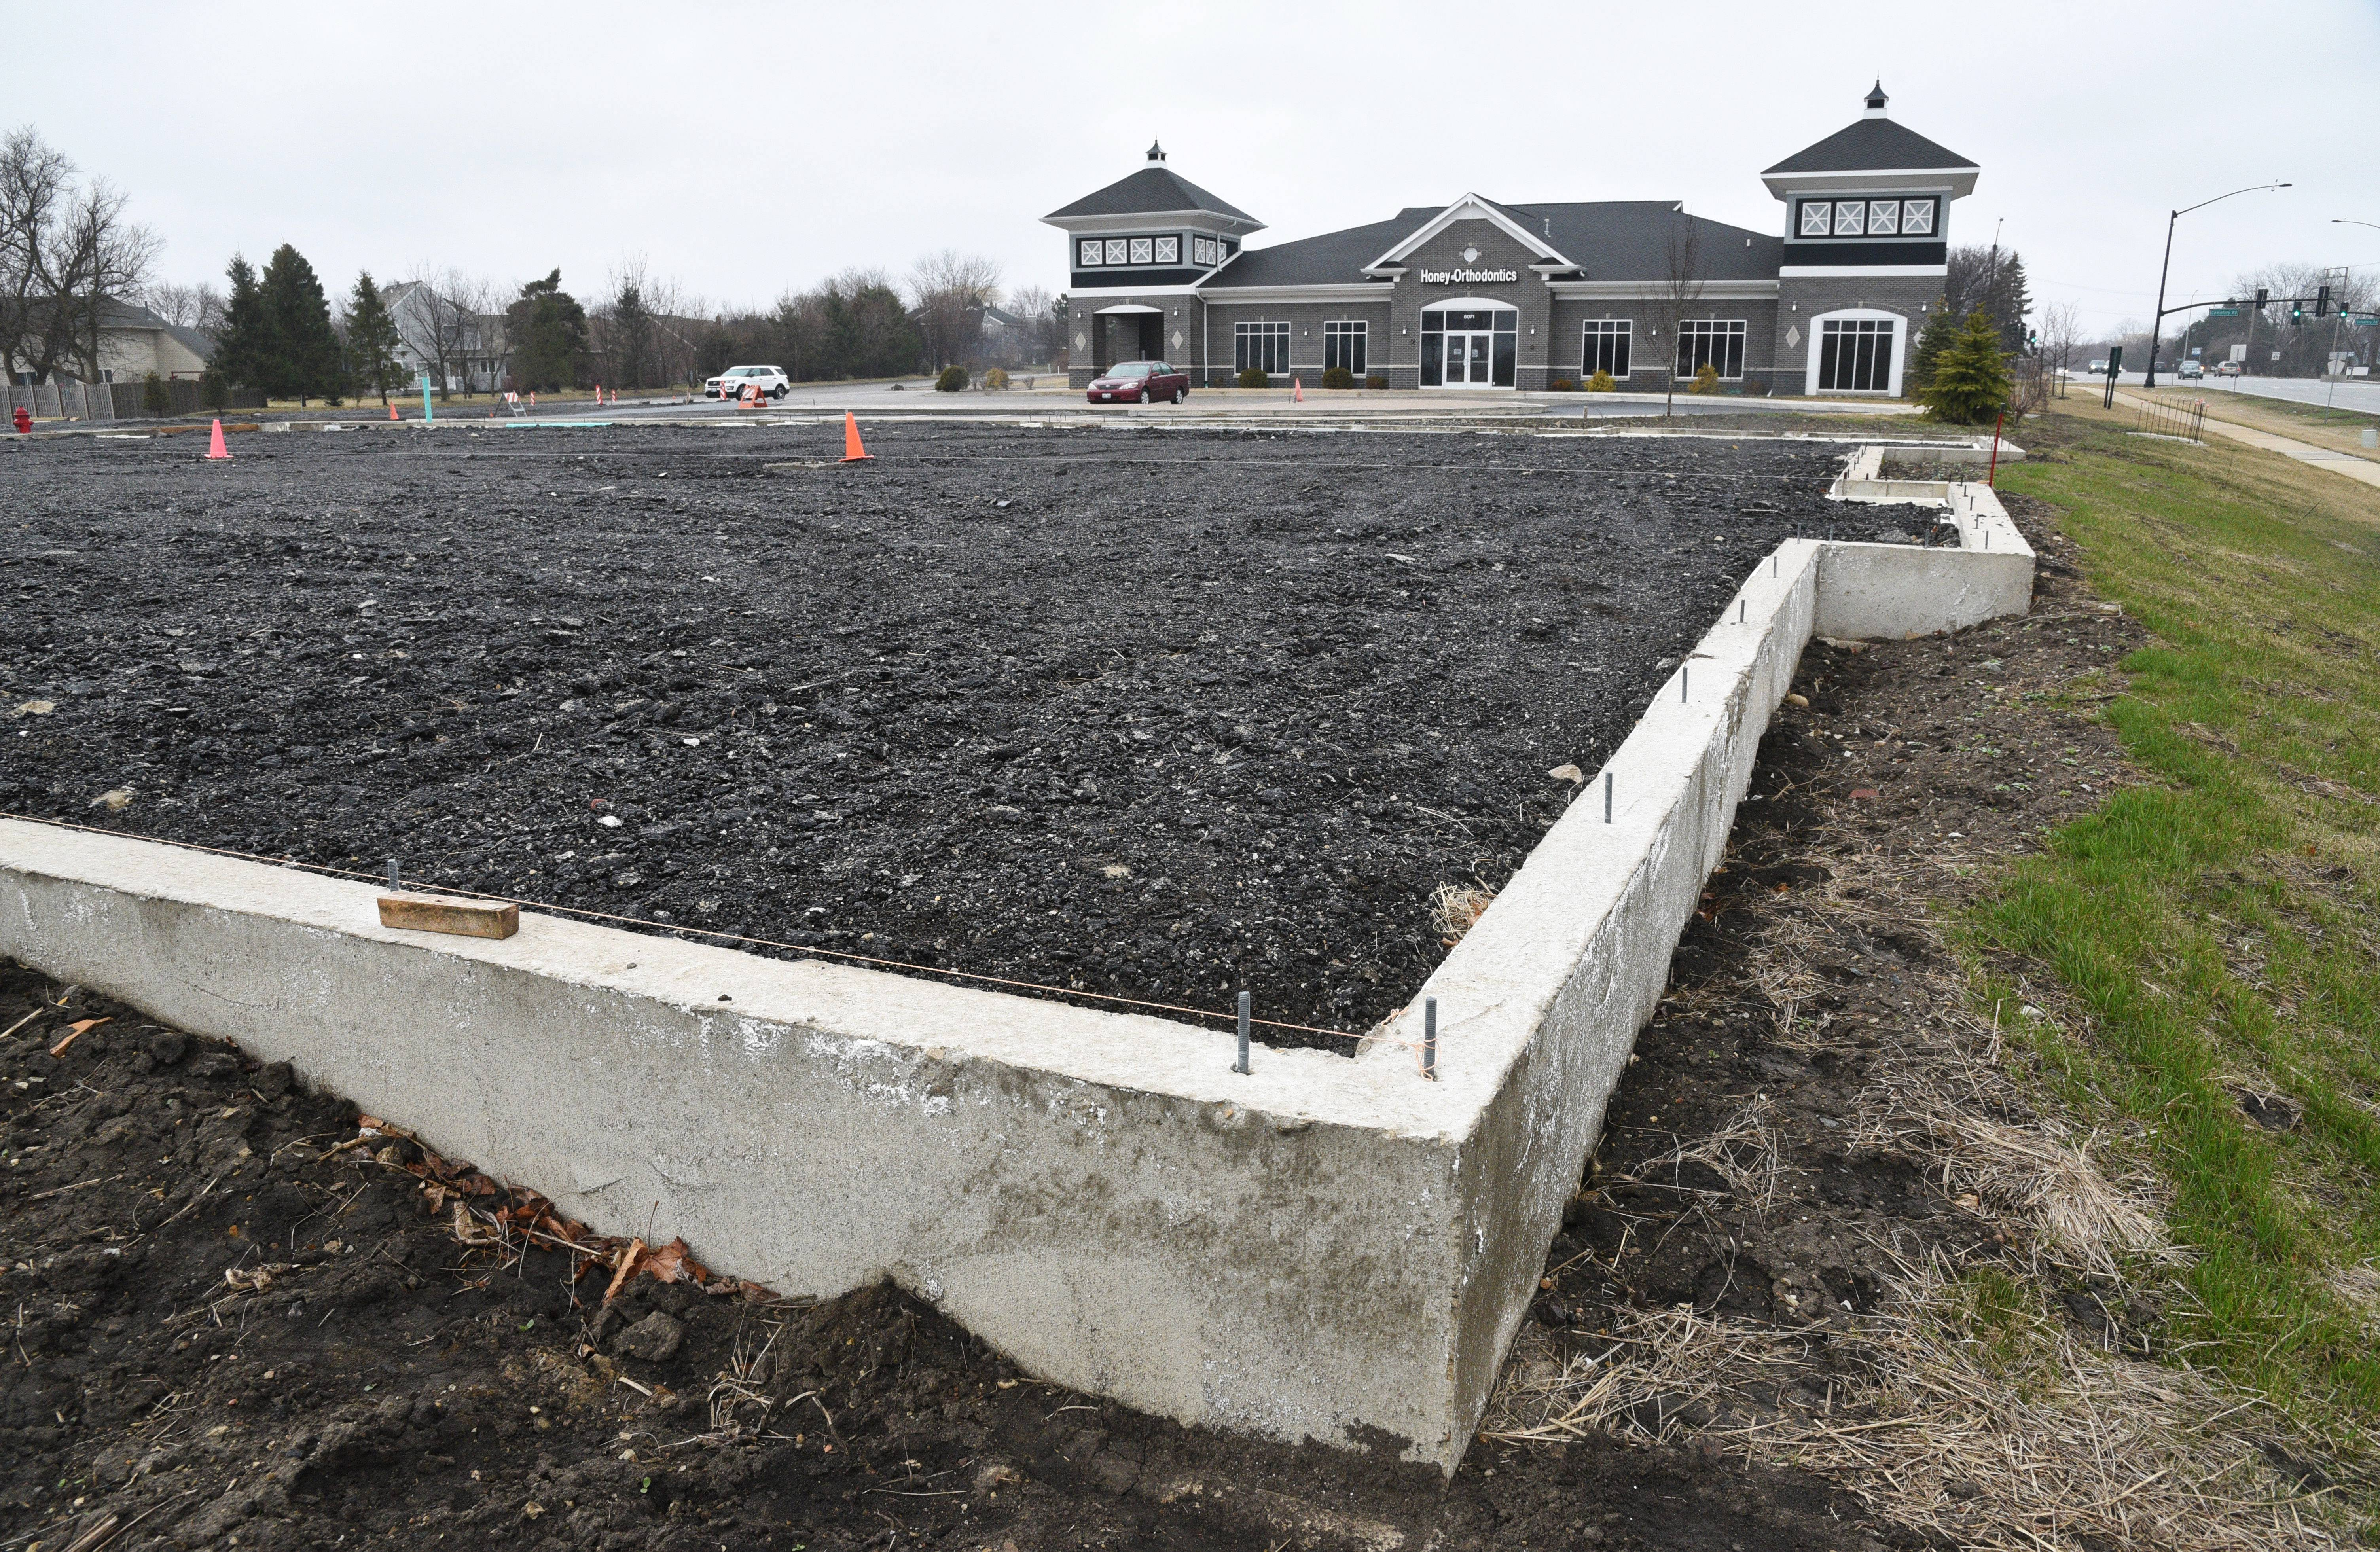 The Gurnee village board will vote Monday on a new commercial development on a 10,000-square-foot vacant site near Washington Street and Cemetery Road on the village's near-west side.